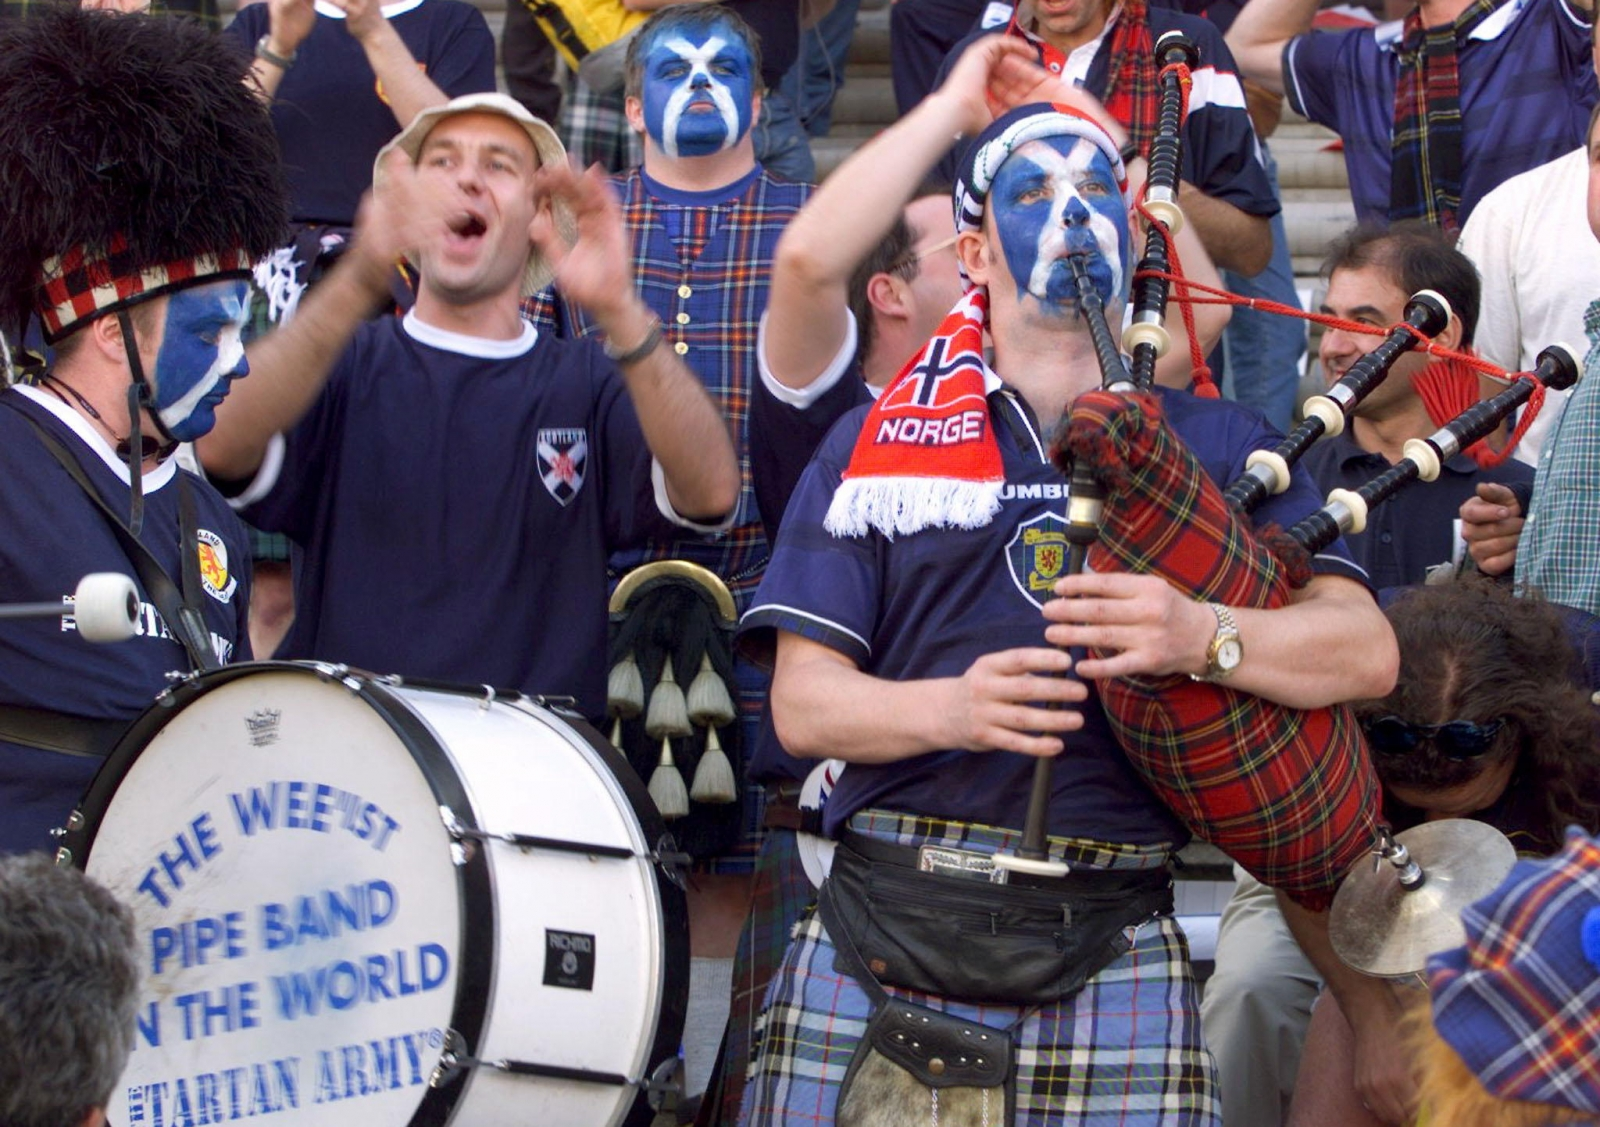 Tartan Army may spurn 'Flower of Scotland' after resounding referendum defeat